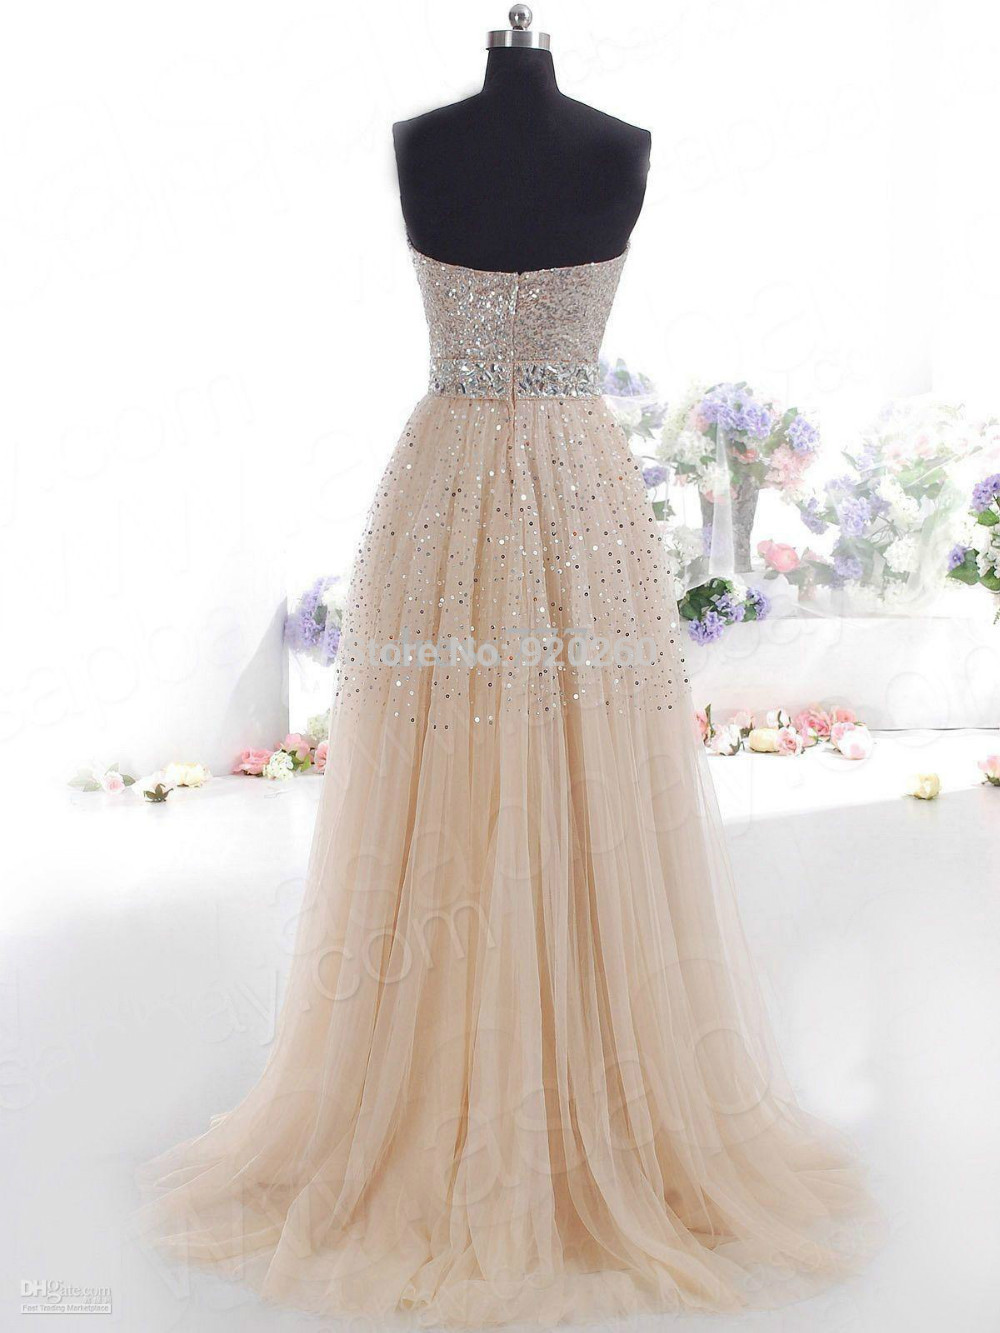 sequin collar Picture - More Detailed Picture about Hot Sale Sweetheart Strapless Shining Beaded Sequins Champagne New Arrival Prom Dresses 2014 New Cheap Lace Up vestido de festa Picture in Prom Dresses from The beautiful princess wedding dresses | Aliexpress.com | Alibaba Group